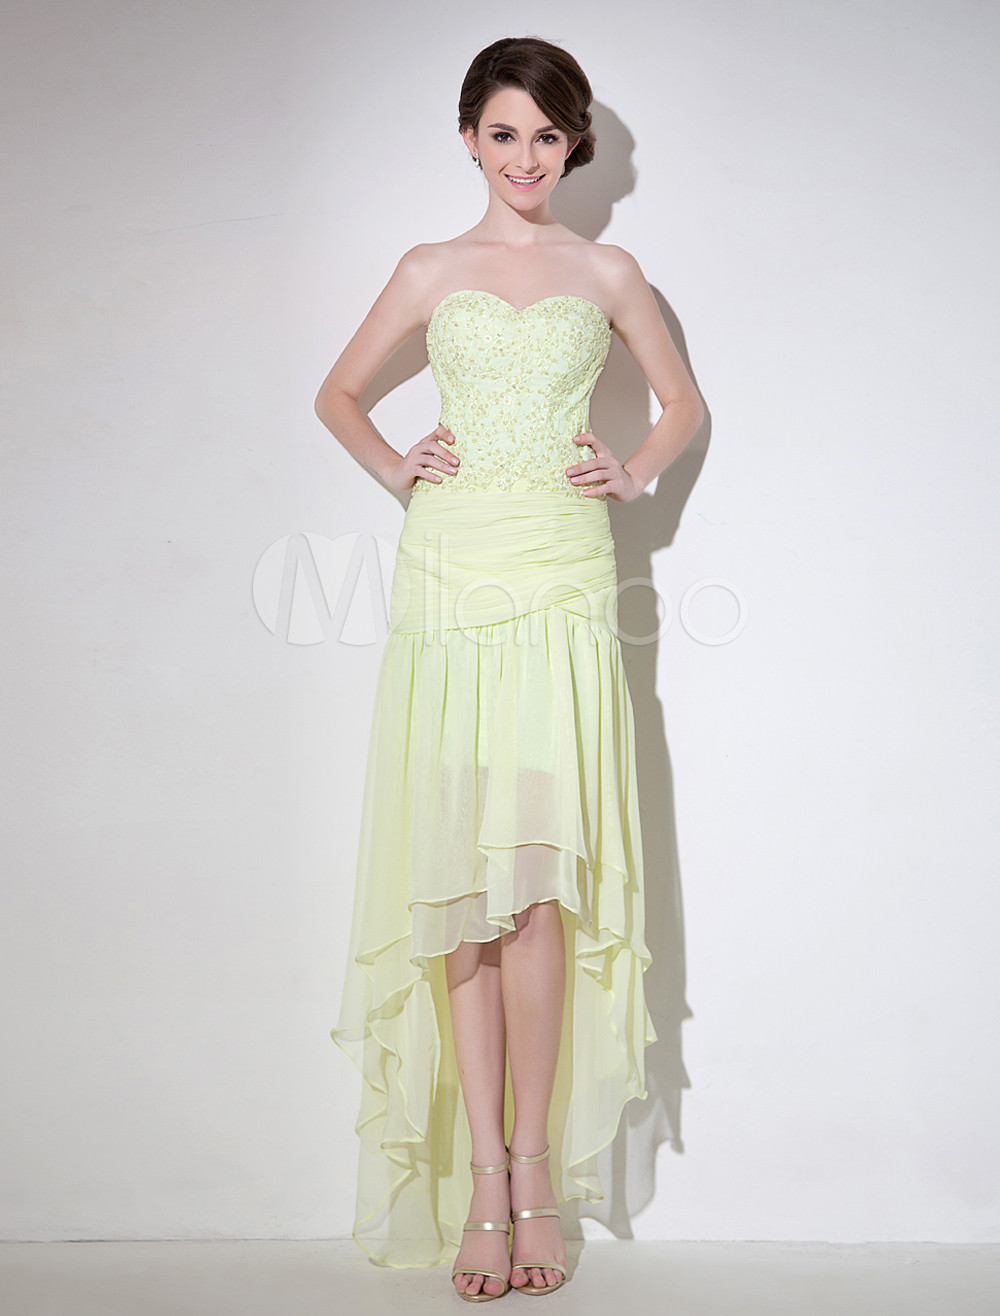 Buy Sheath Daffodil Sweetheart Neck Beading Chiffon Prom Dress Milanoo for $139.99 in Milanoo store